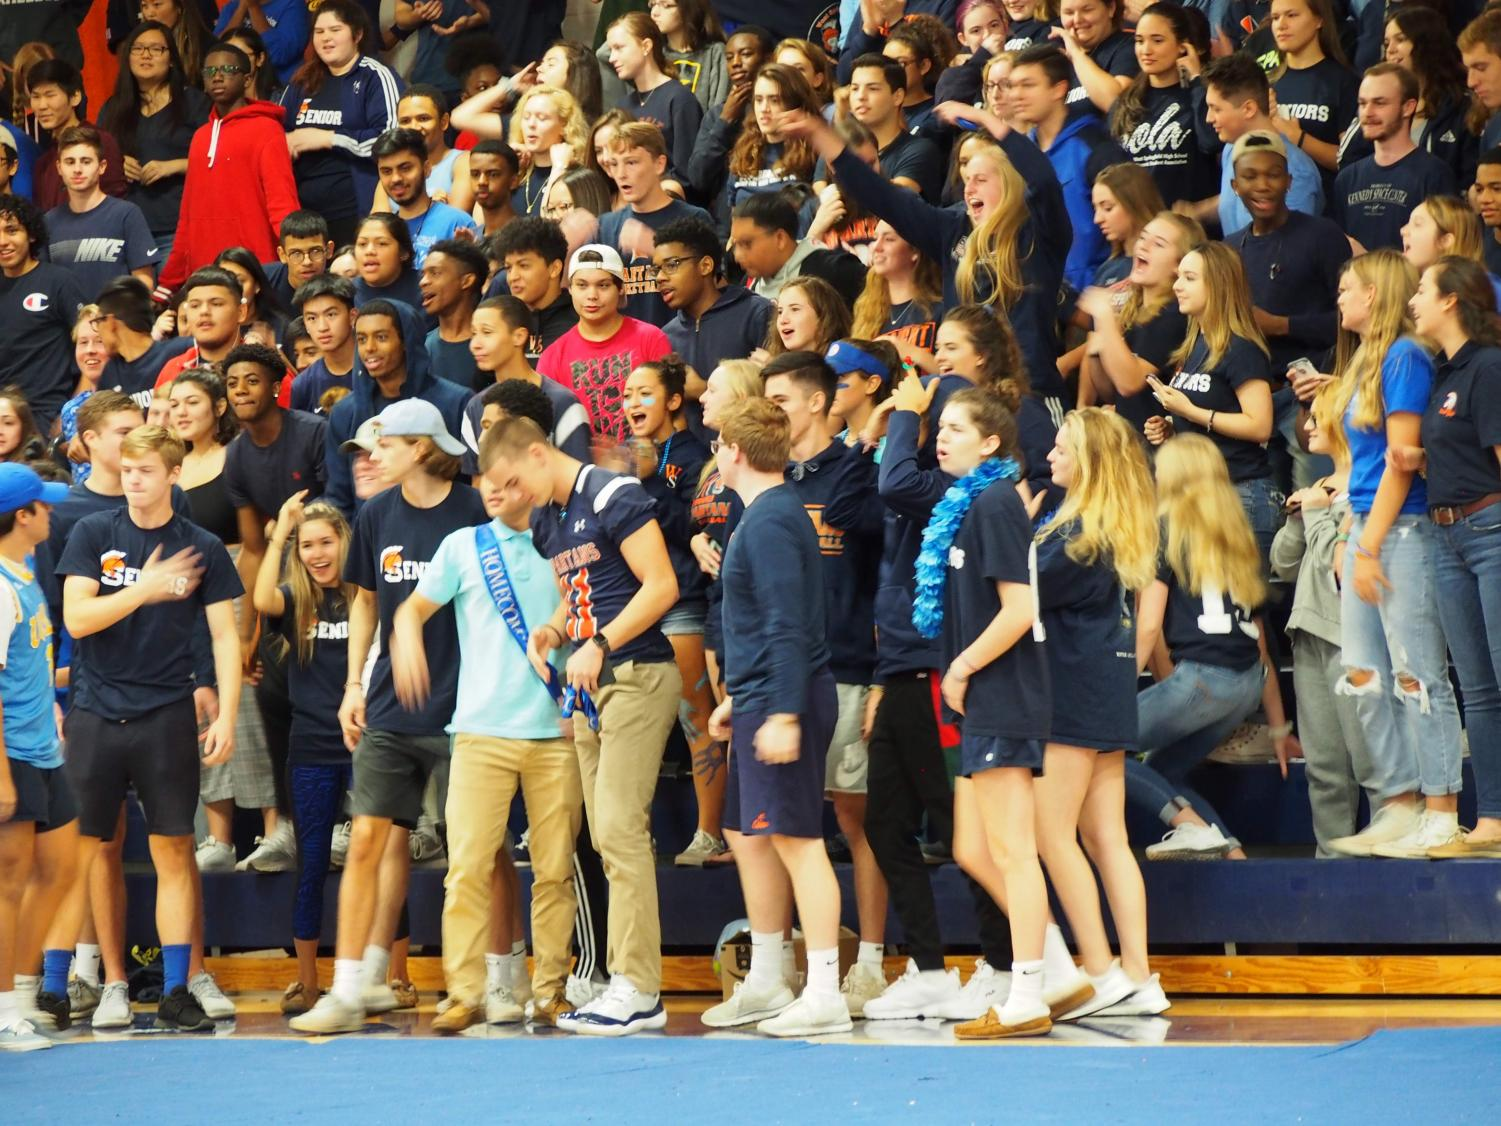 Seniors yell at the Homecoming pep rally; that yelling occasionally took the form of booing.